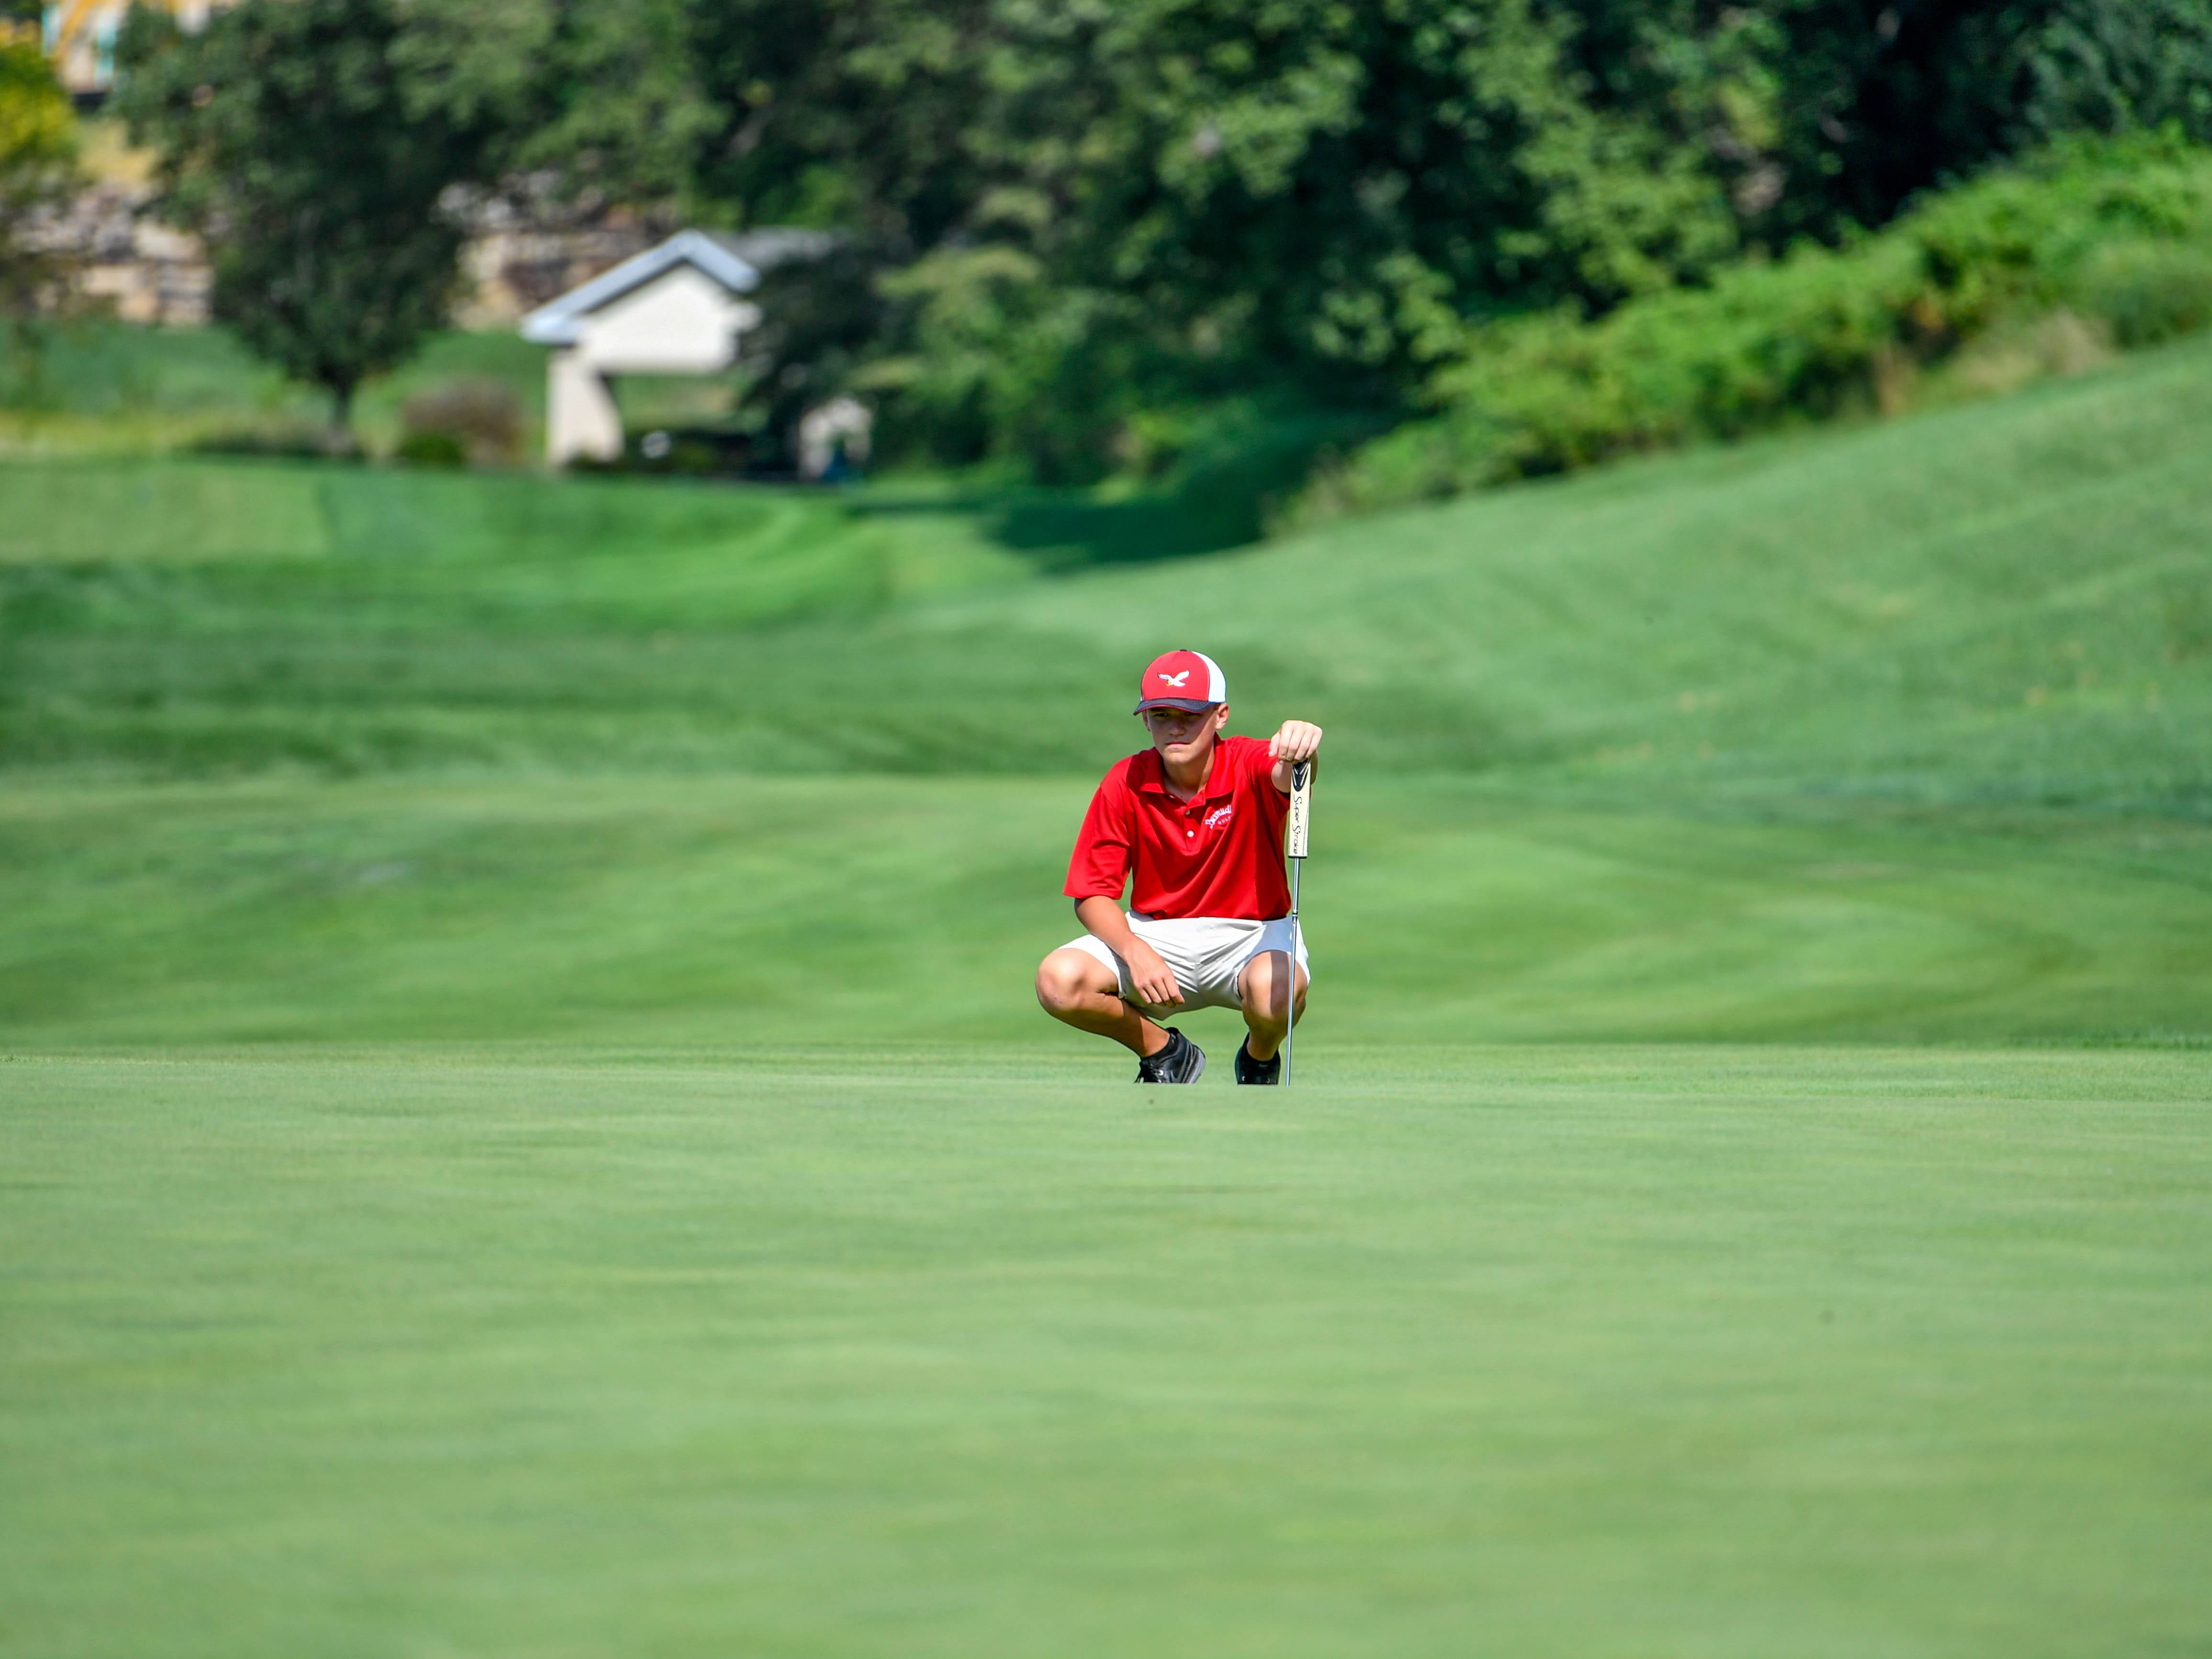 Tucker Byers of Bermudian Springs looks at the long putt ahead at Regents Glen Country Club on August 28.